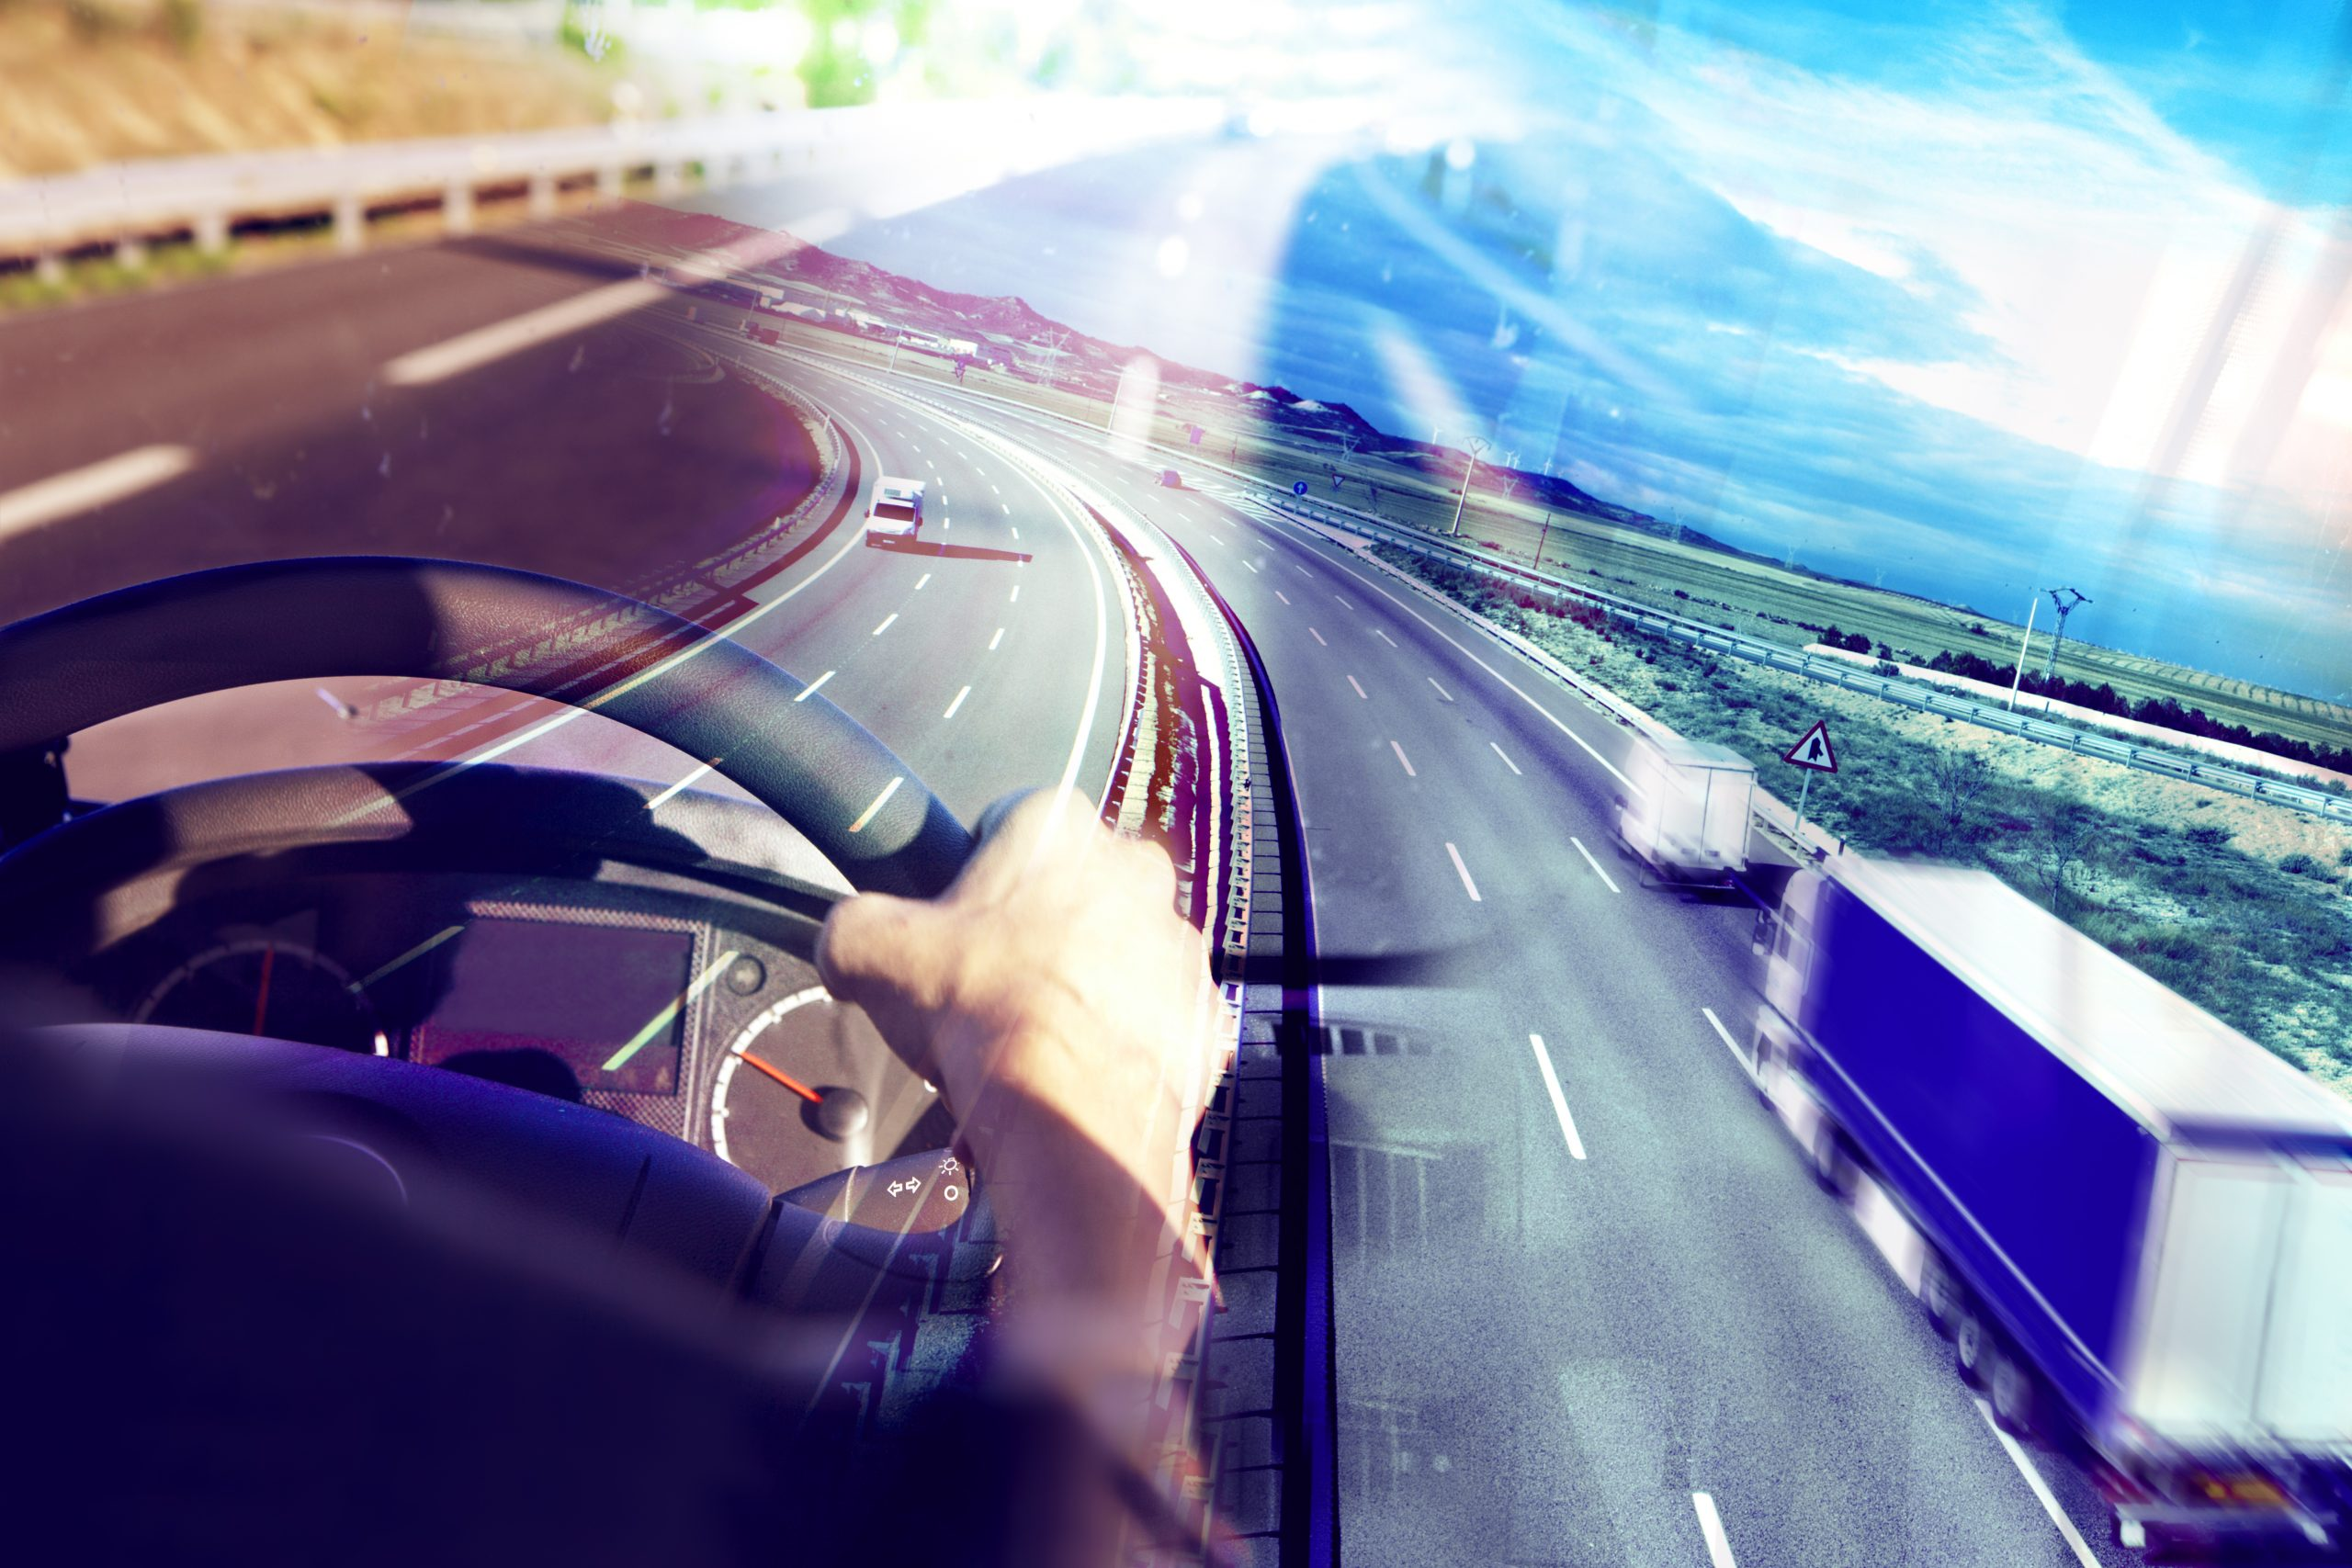 Are your drivers ready for the future of logistics? Our Driver CPC Module can help